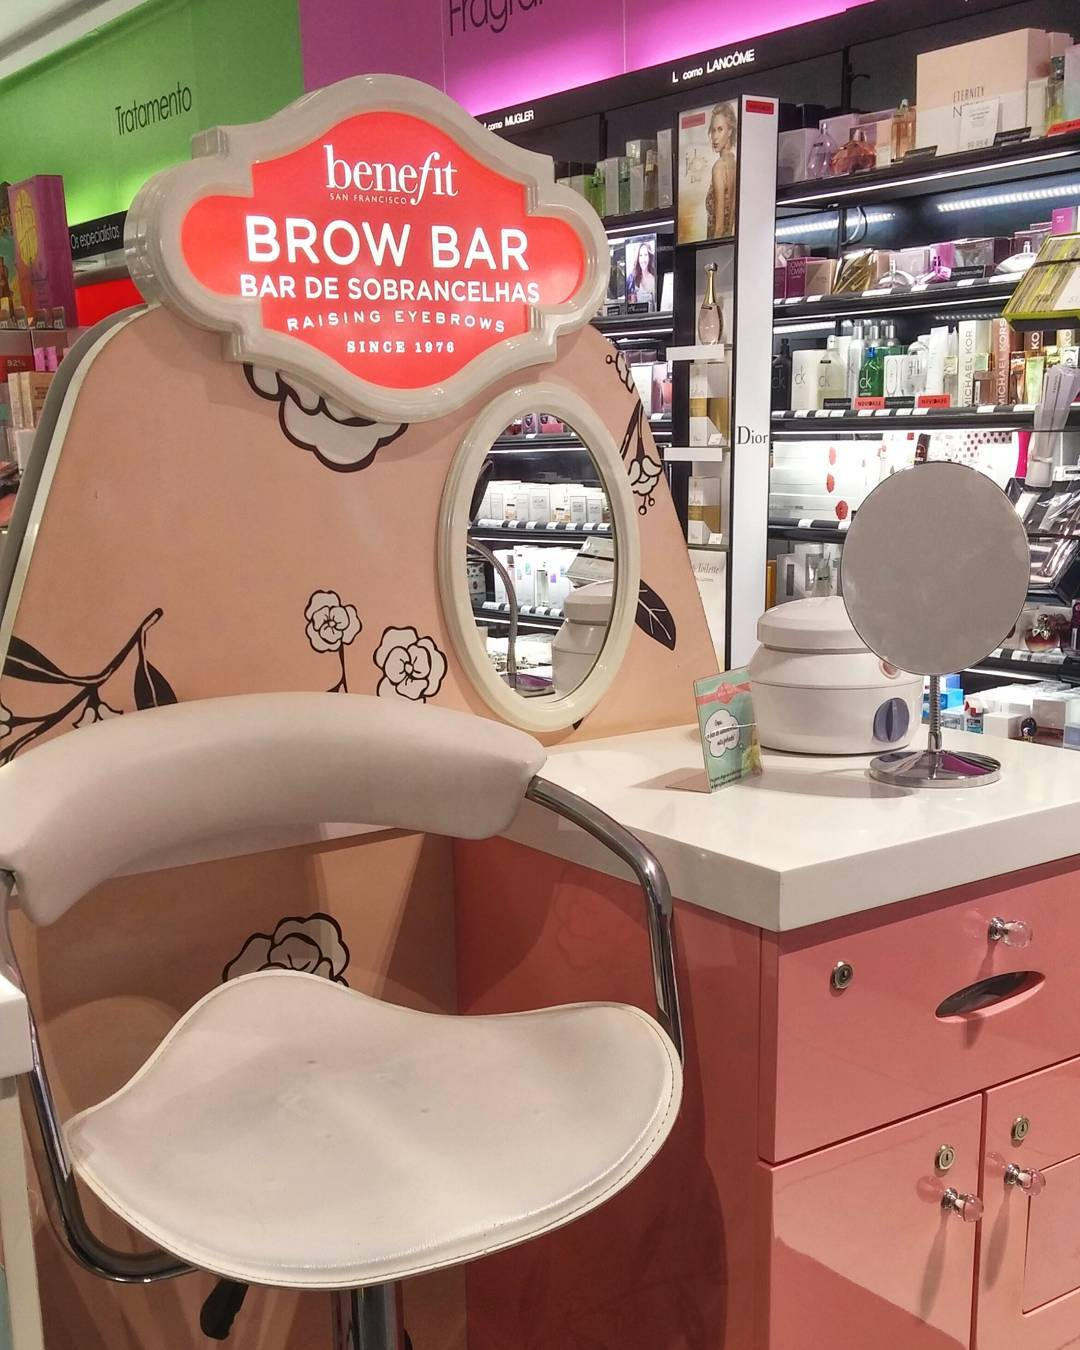 Everywhere I go, I see #brows, #Brows, #BROWS! Quick reminder that throughout the month of May, book a brow service with @benefitcanada and *every dollar* dollarfrom their #browwax services goes to charities that empower women and girls - check http://www.boldisbeautiful.com/ca/ for more details  #BoldIsBeautiful